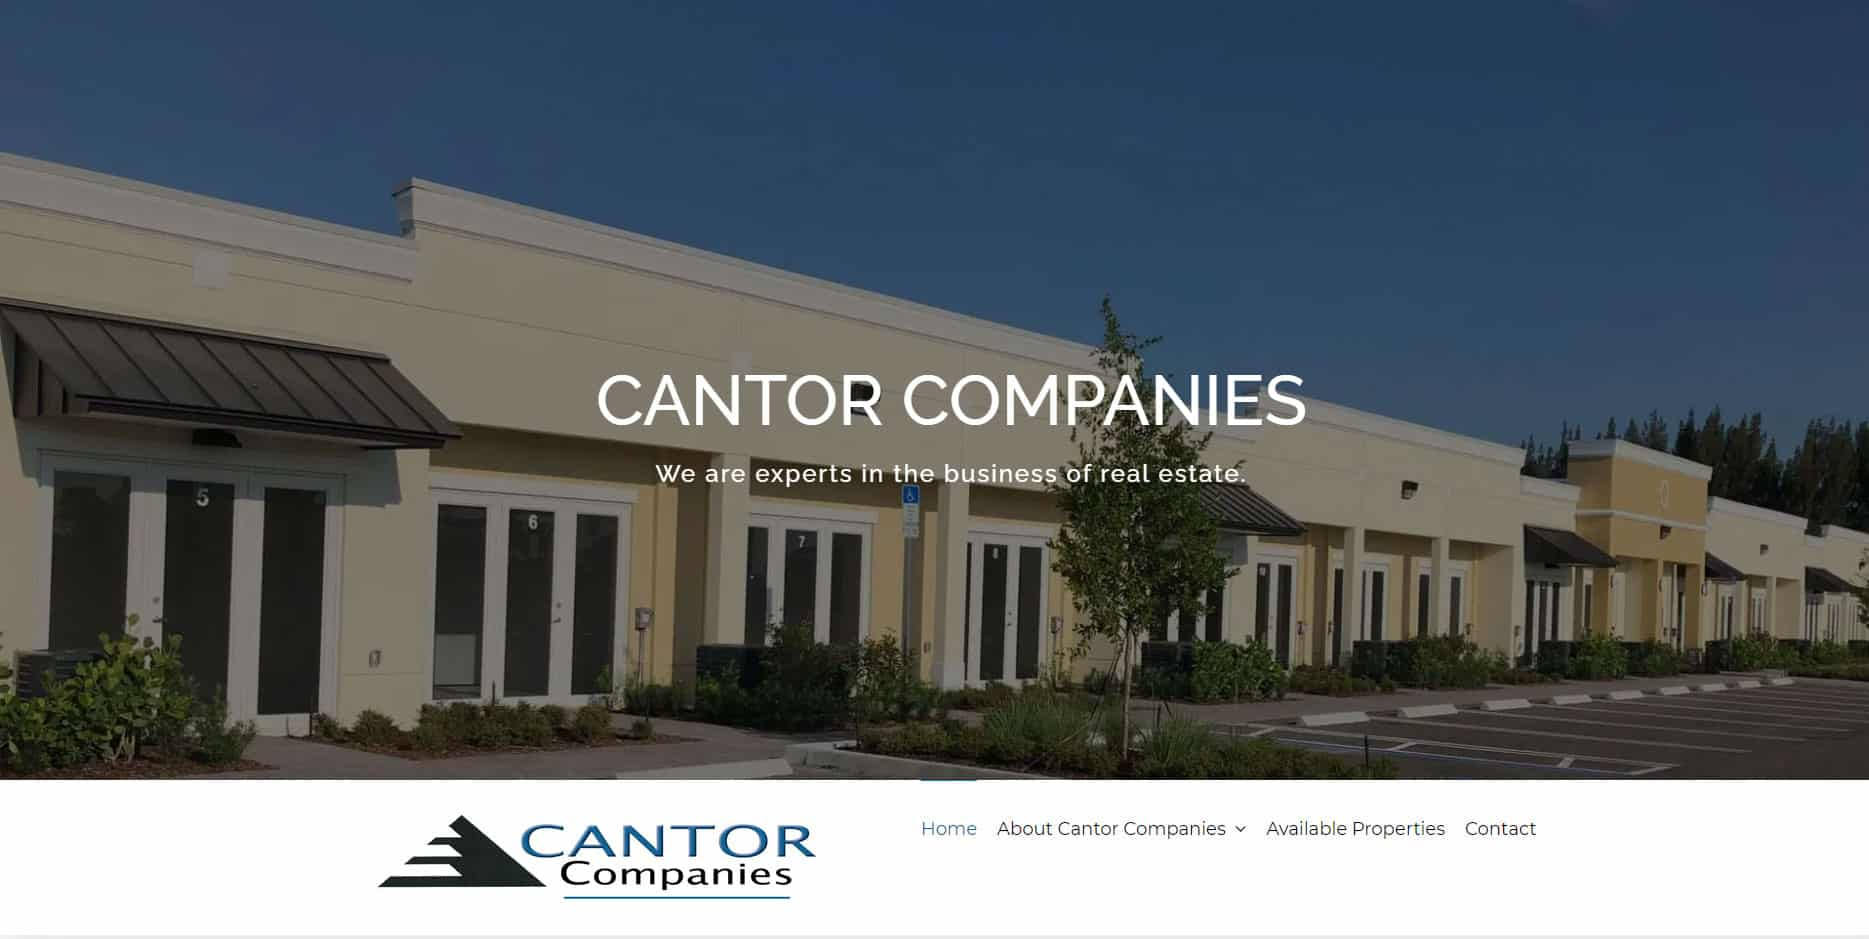 cantor-companies-website